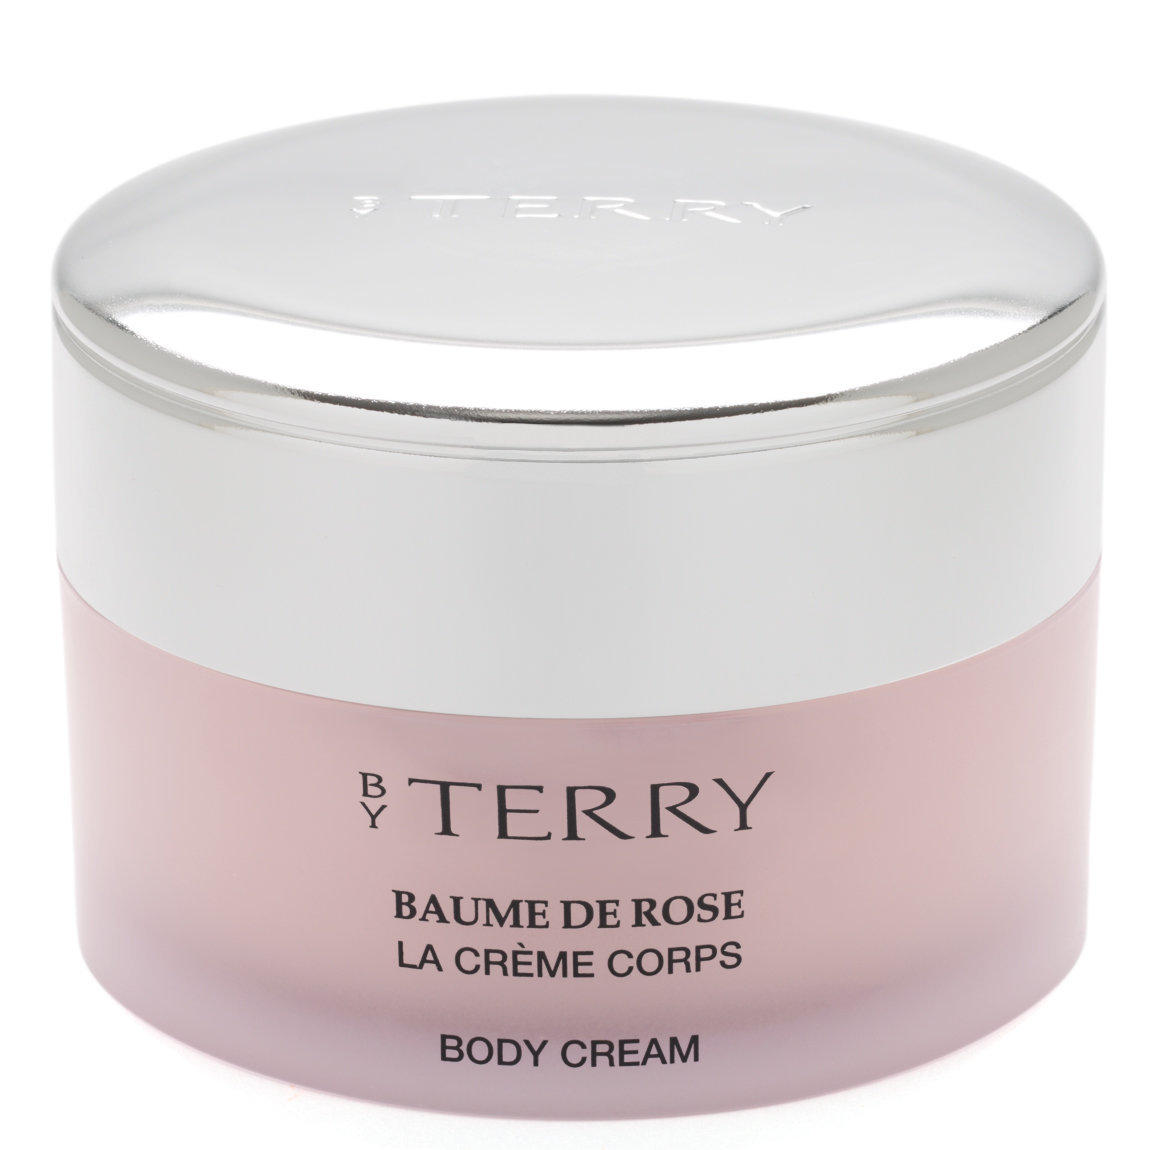 BY TERRY Baume de Rose Body Cream product smear.